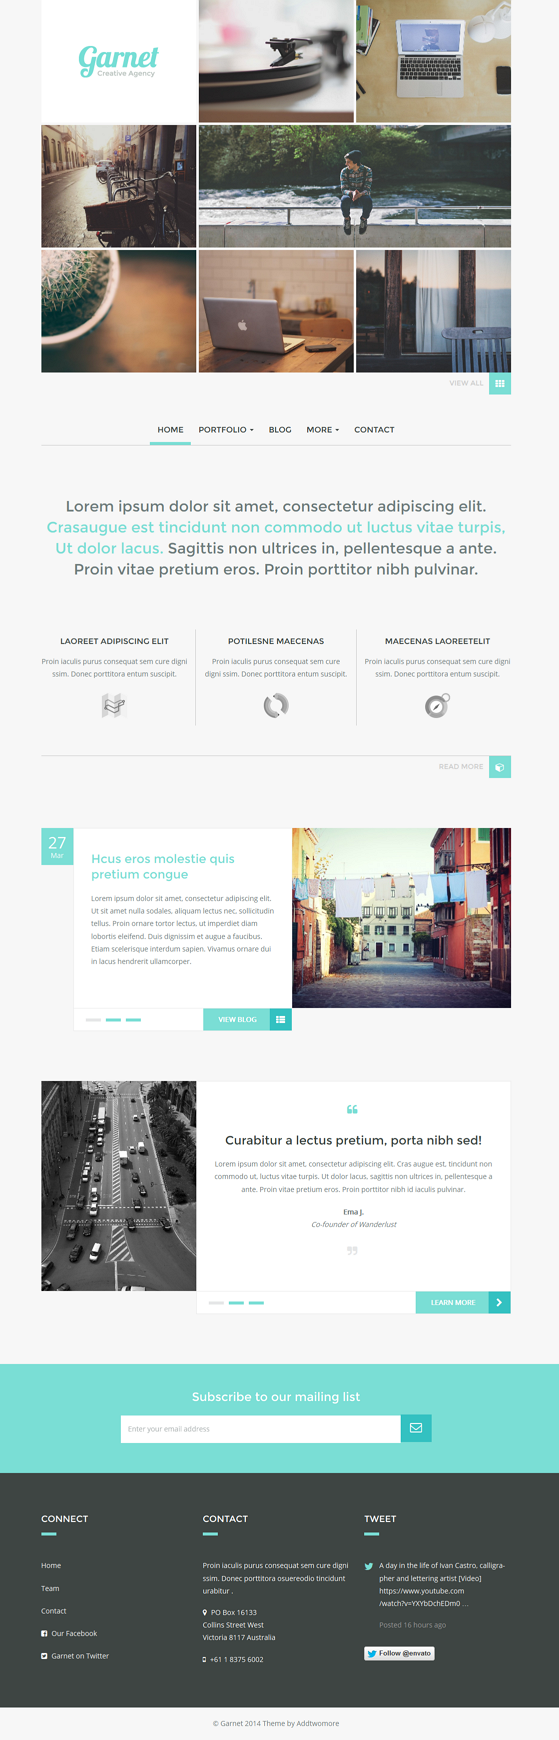 Garnet is a clean lightweight and elegant responsive WordPress theme suitable for any Portfolio.